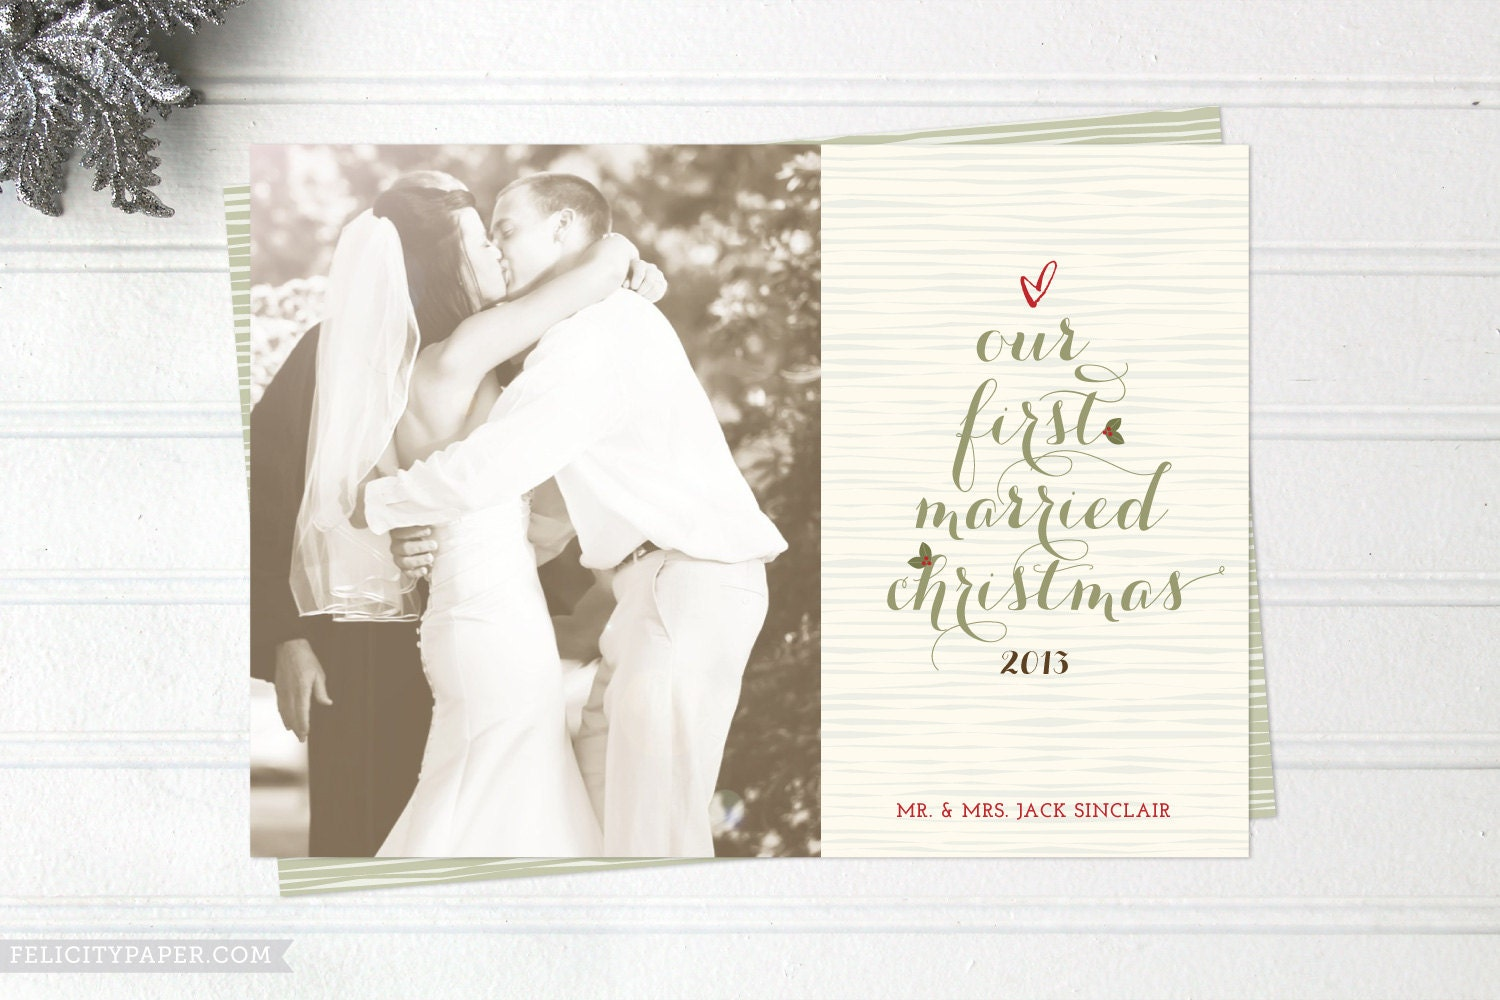 Christmas Card Just Married | Holliday Decorations